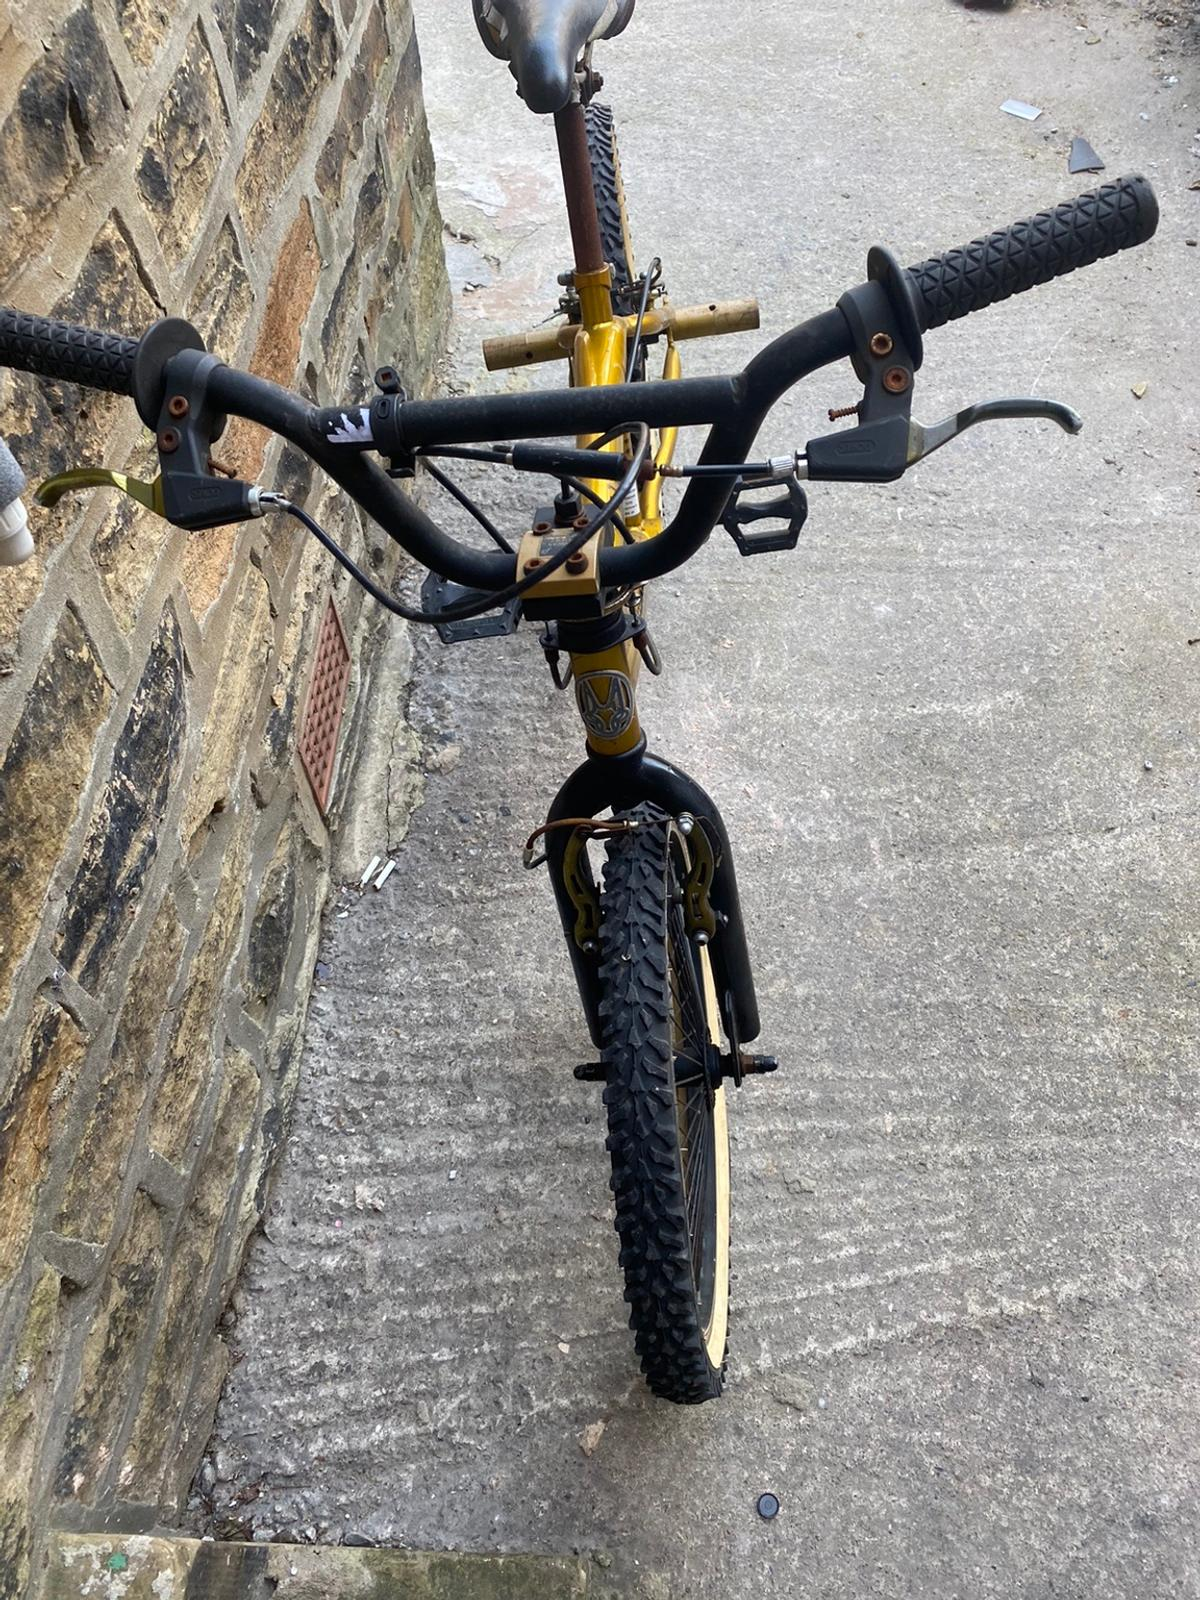 BMX stunt bike bullion silverfox Good tyres Multi spoke wheels Rear pegs Not been used for a while Brakes will need adjusting Can deliver for a charge